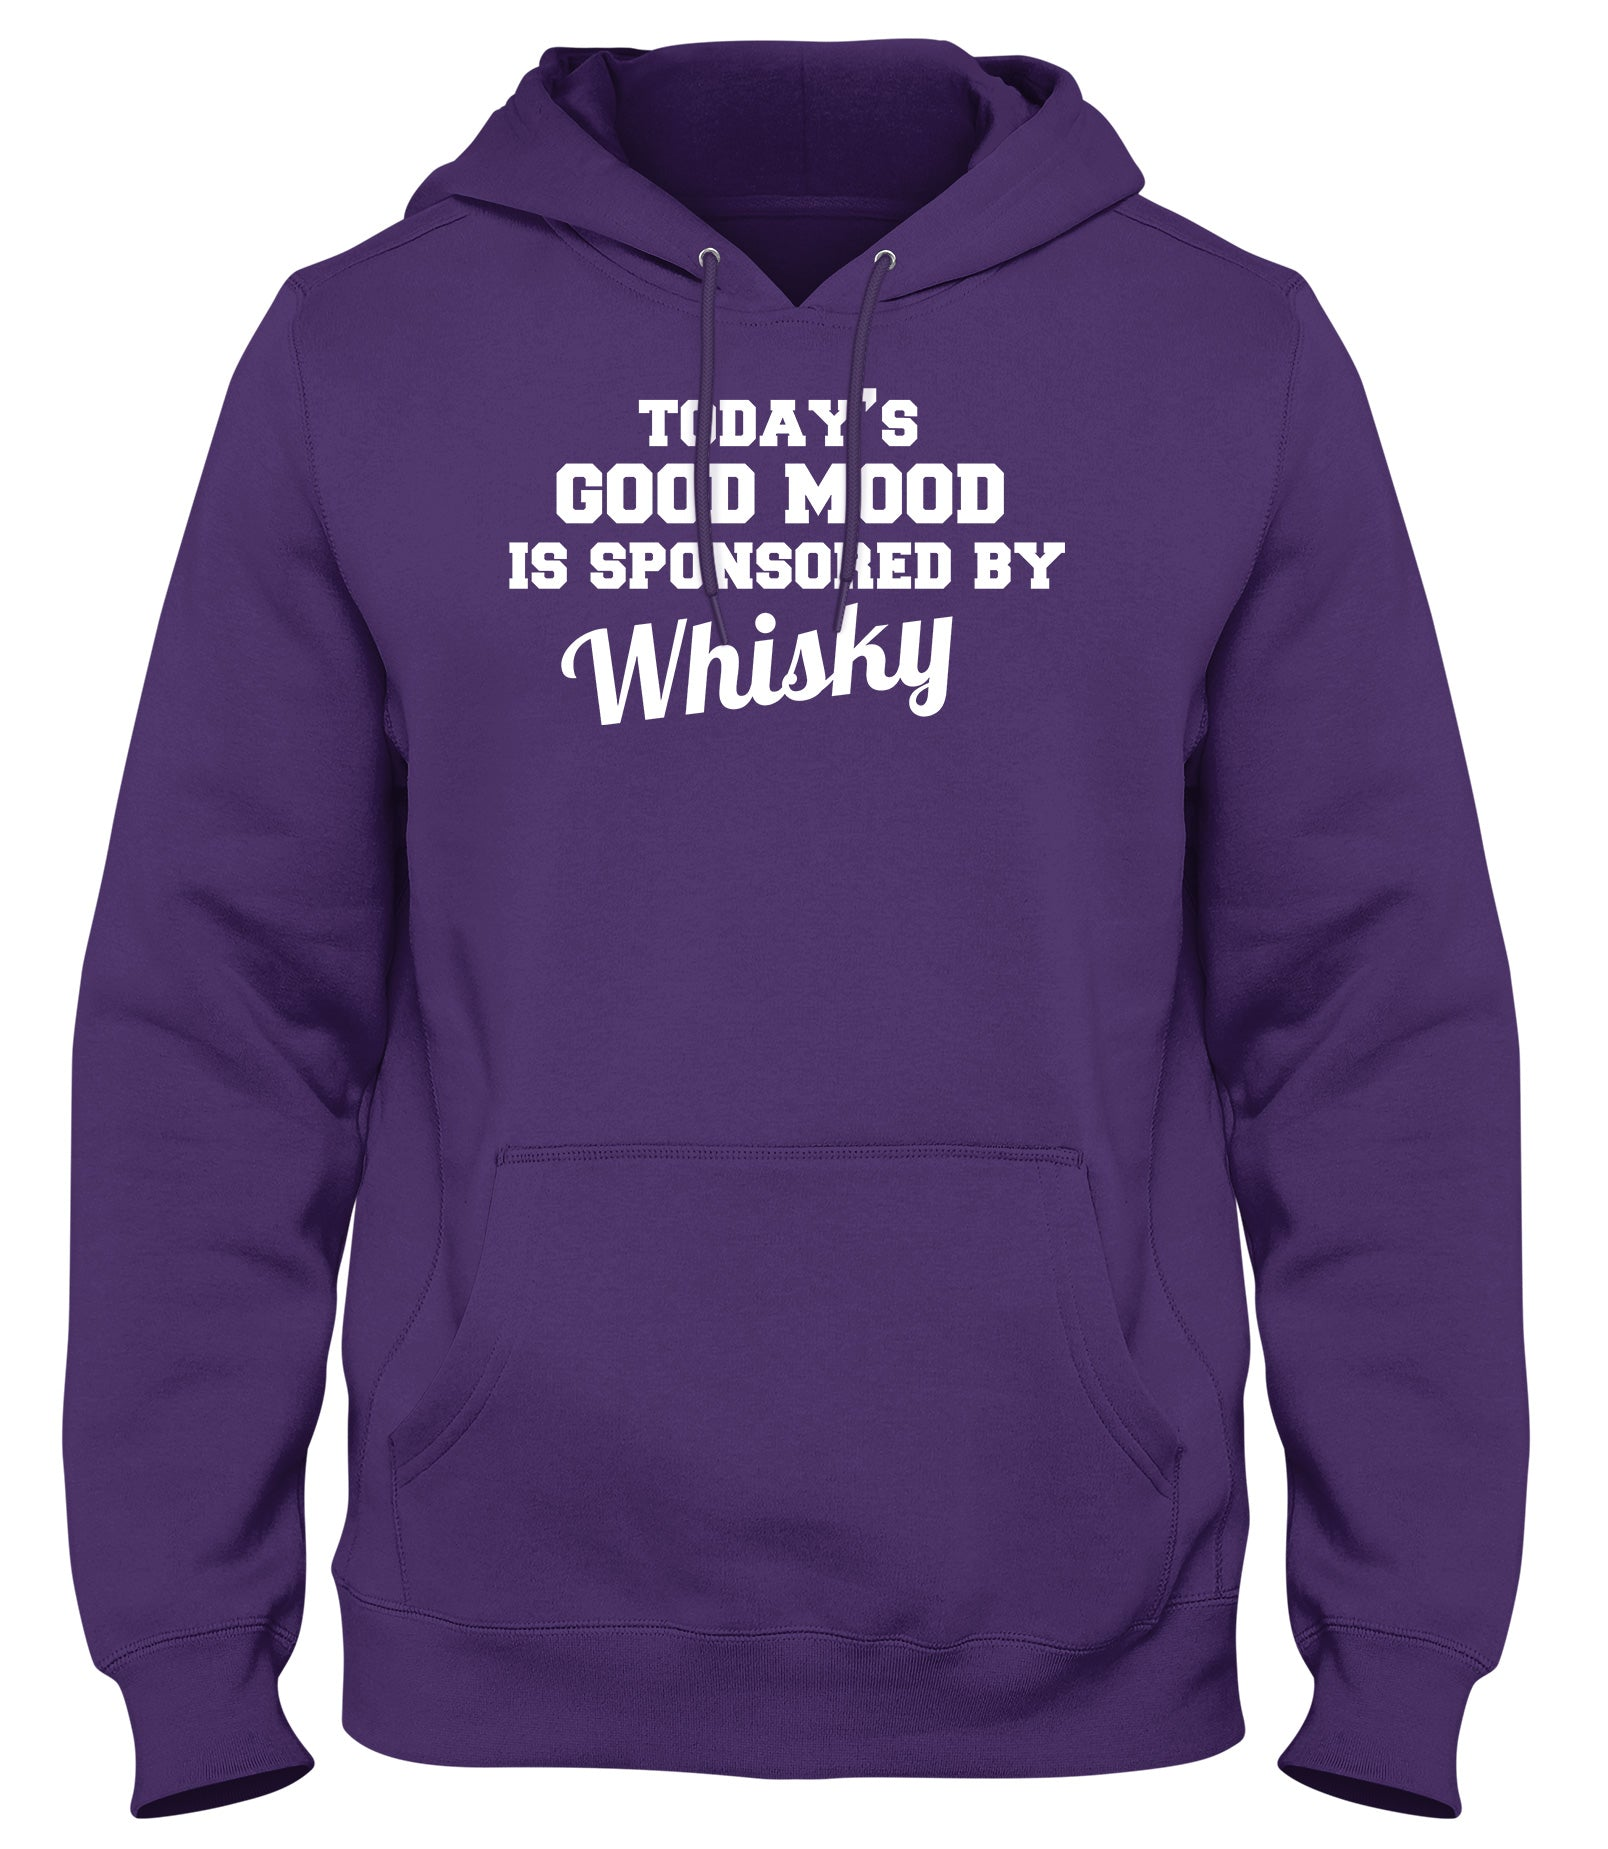 TODAY'S GOOD MOOD IS SPONSORED BY WHISKY WOMENS LADIES MENS UNISEX HOODIE